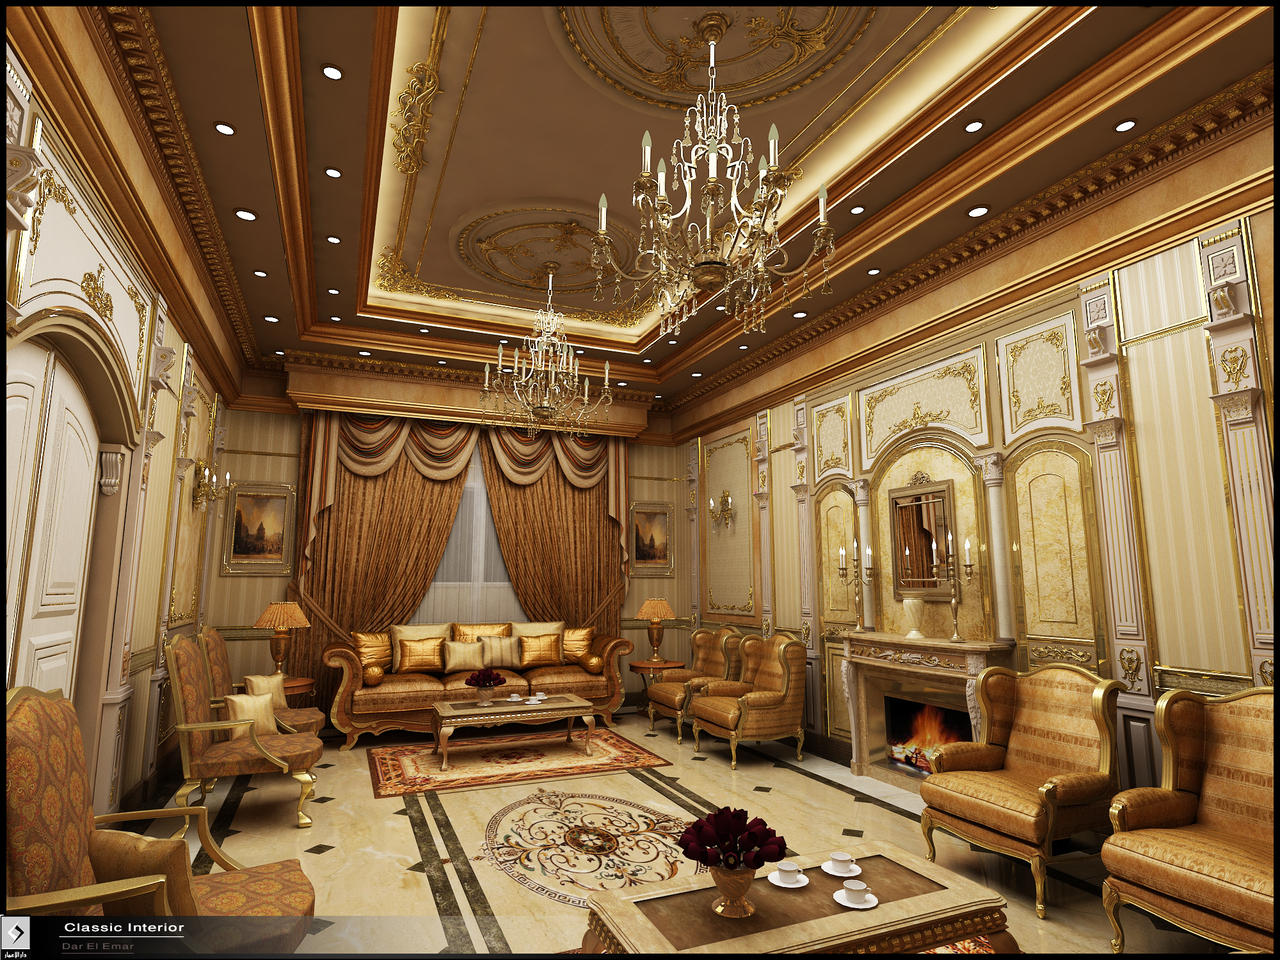 Classic interior in ksa by amr maged on deviantart for Classic villa interior design